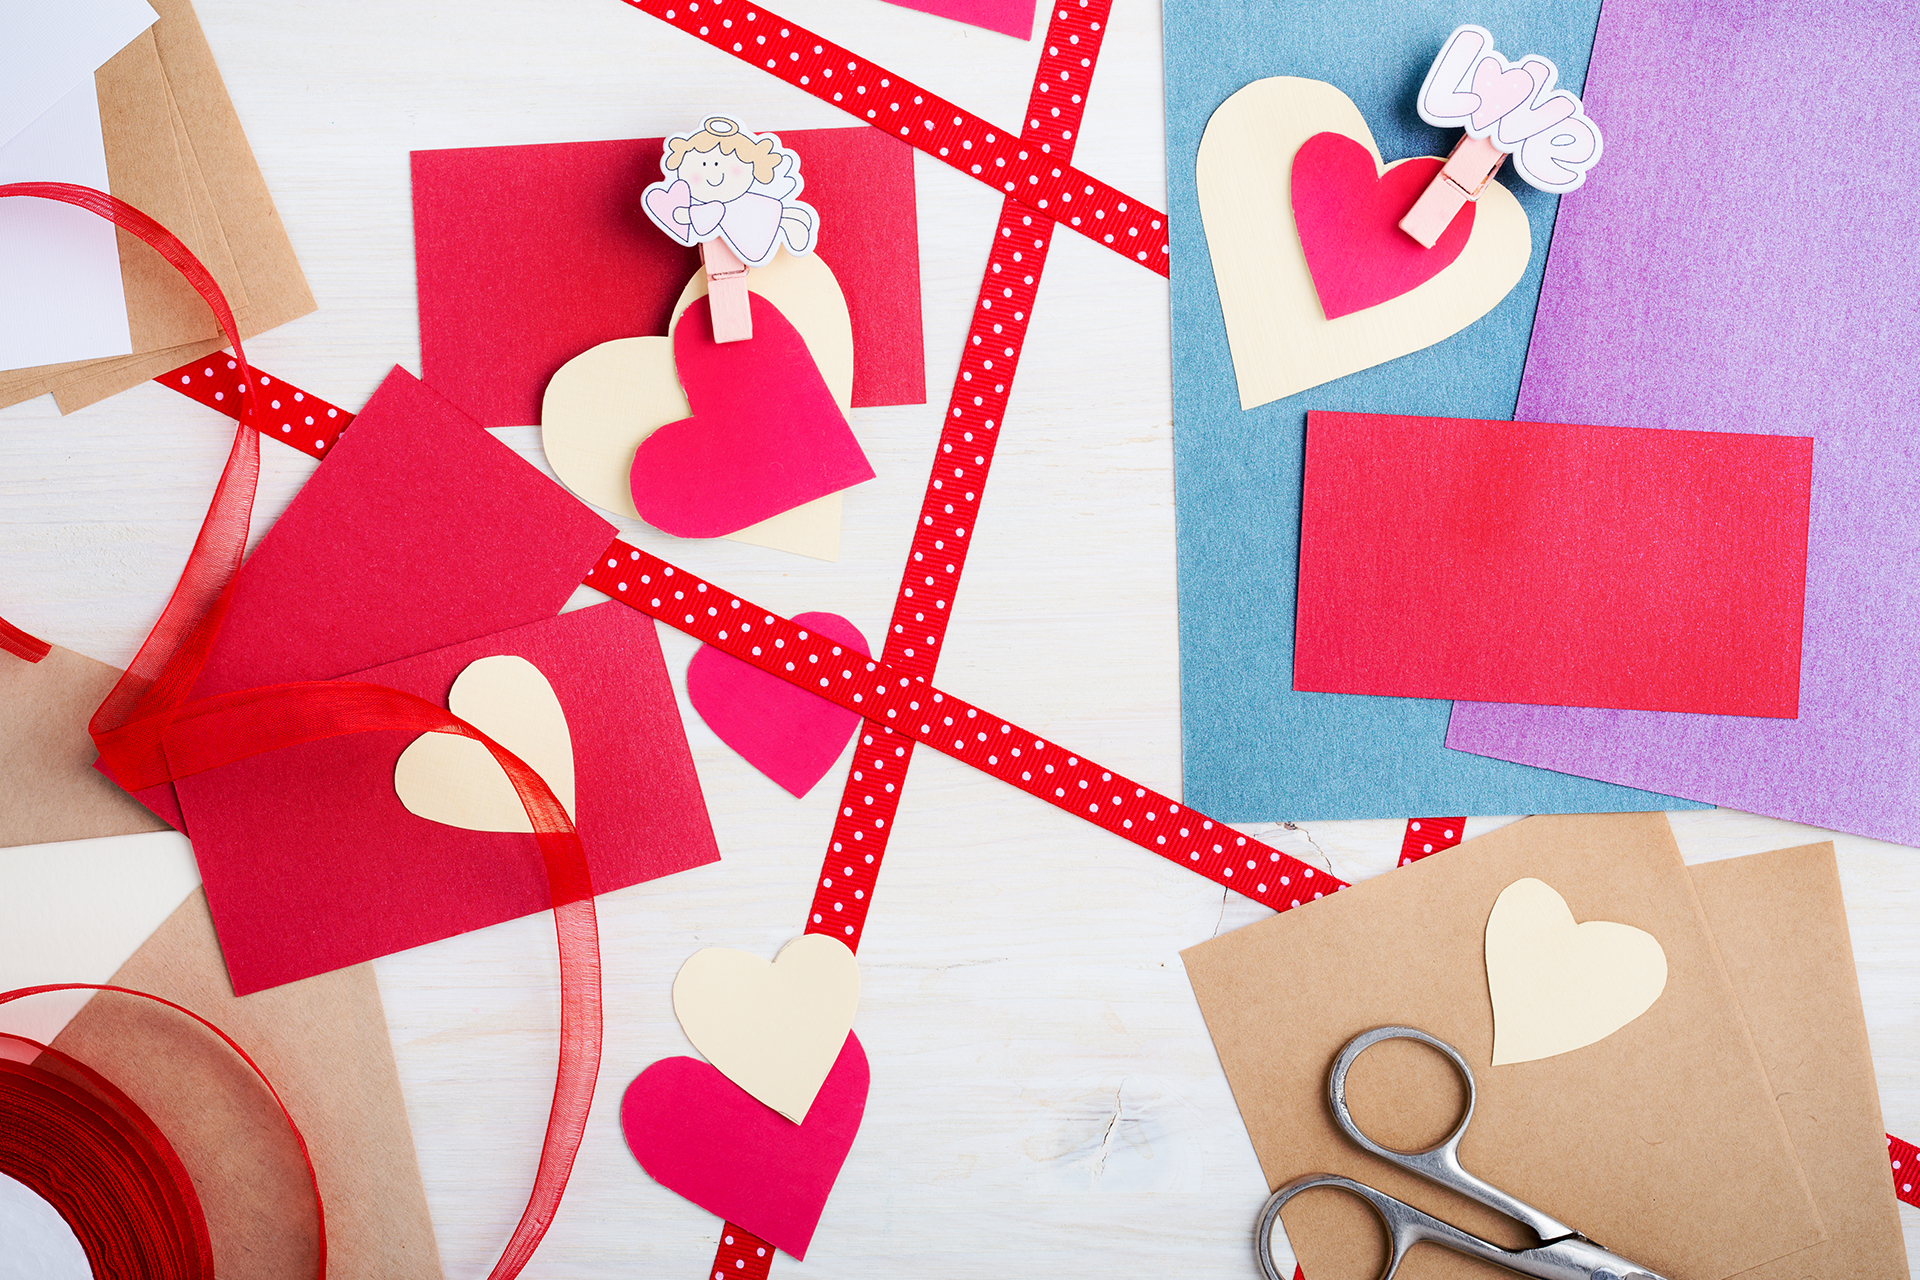 Show Some Love With These Sweet Valentine's Day Crafts